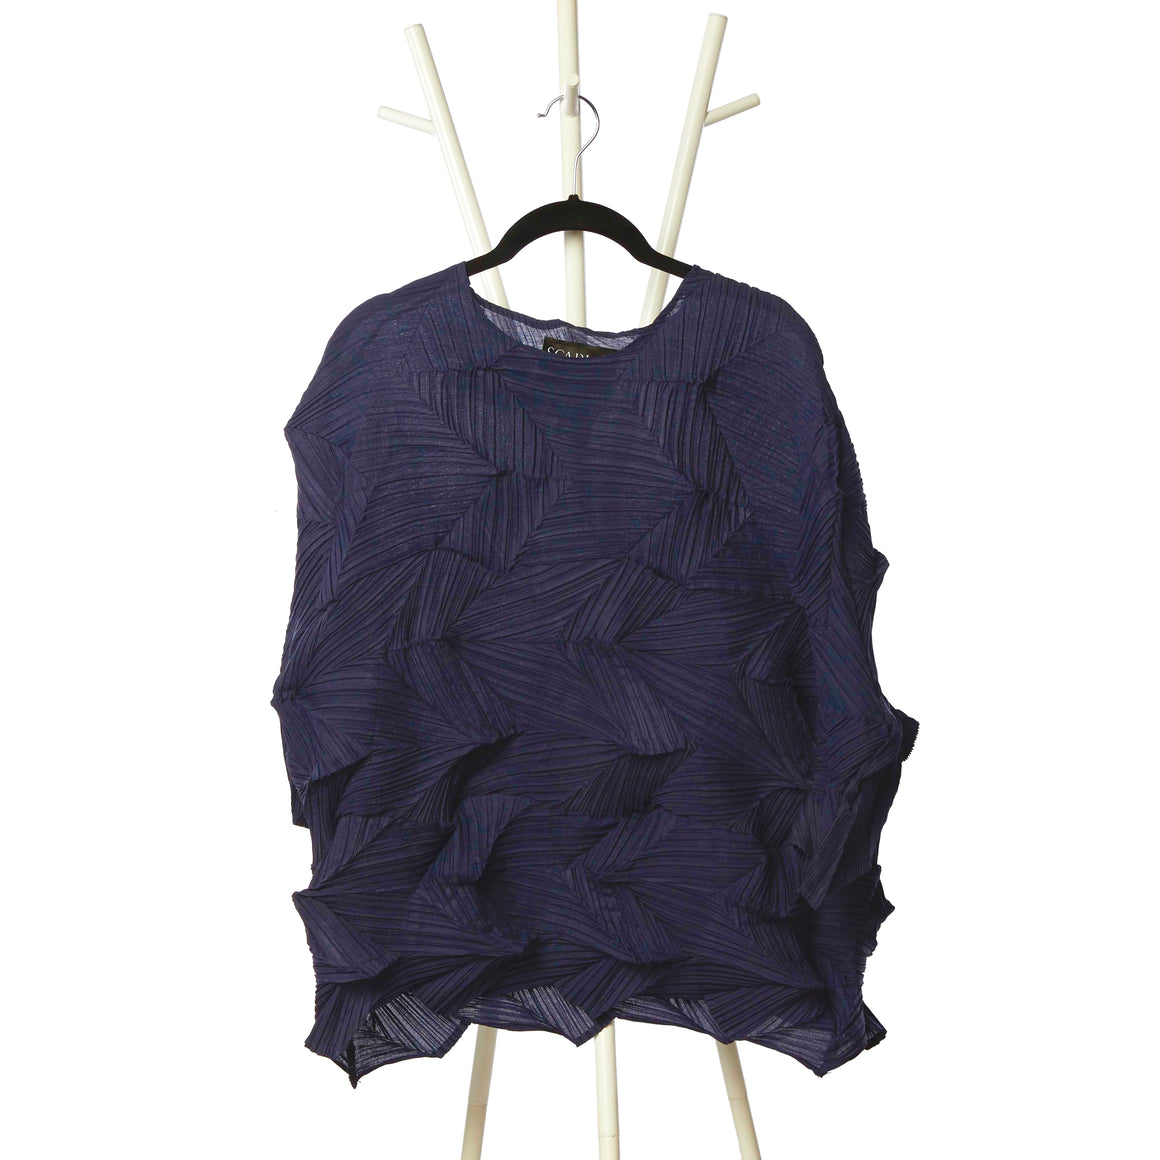 3Dimensional Pleated Top - Navy Blue